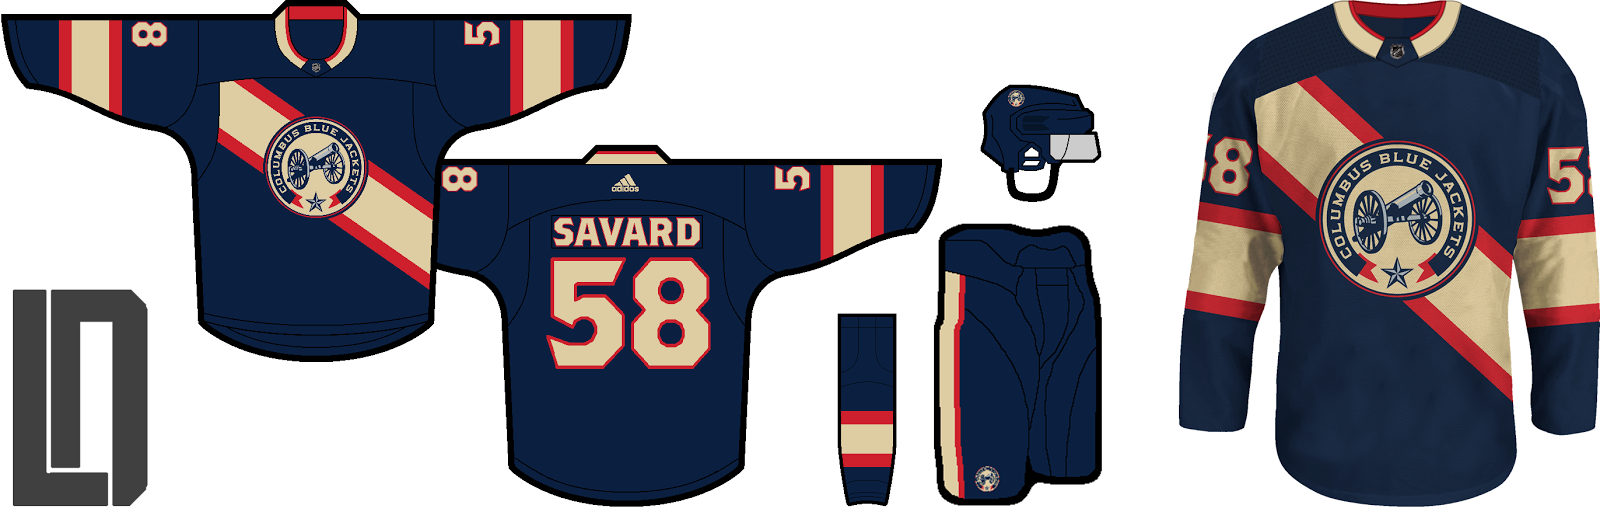 NHL Adidas Alternates (Series completed!) - Concepts - Chris ... 61a8b8136